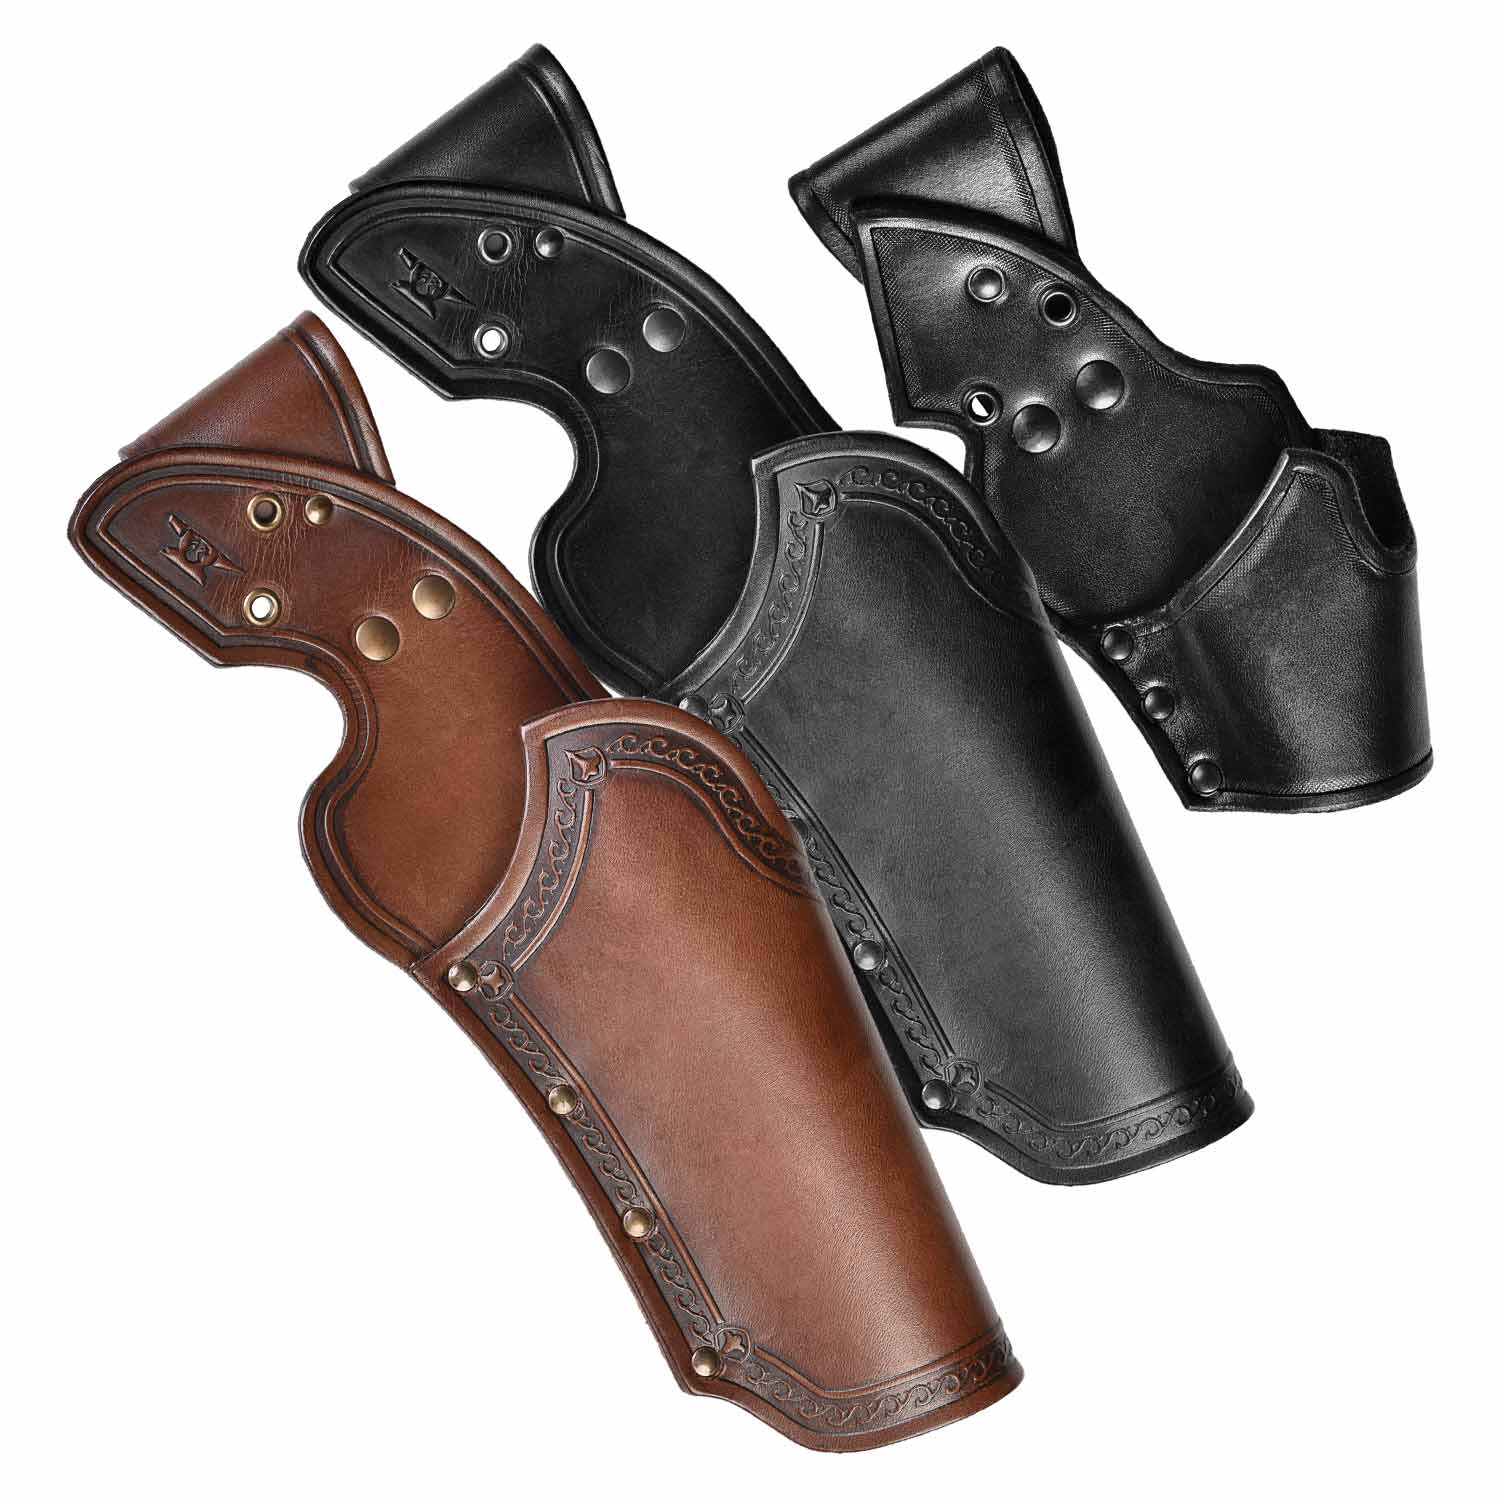 Dragone holster